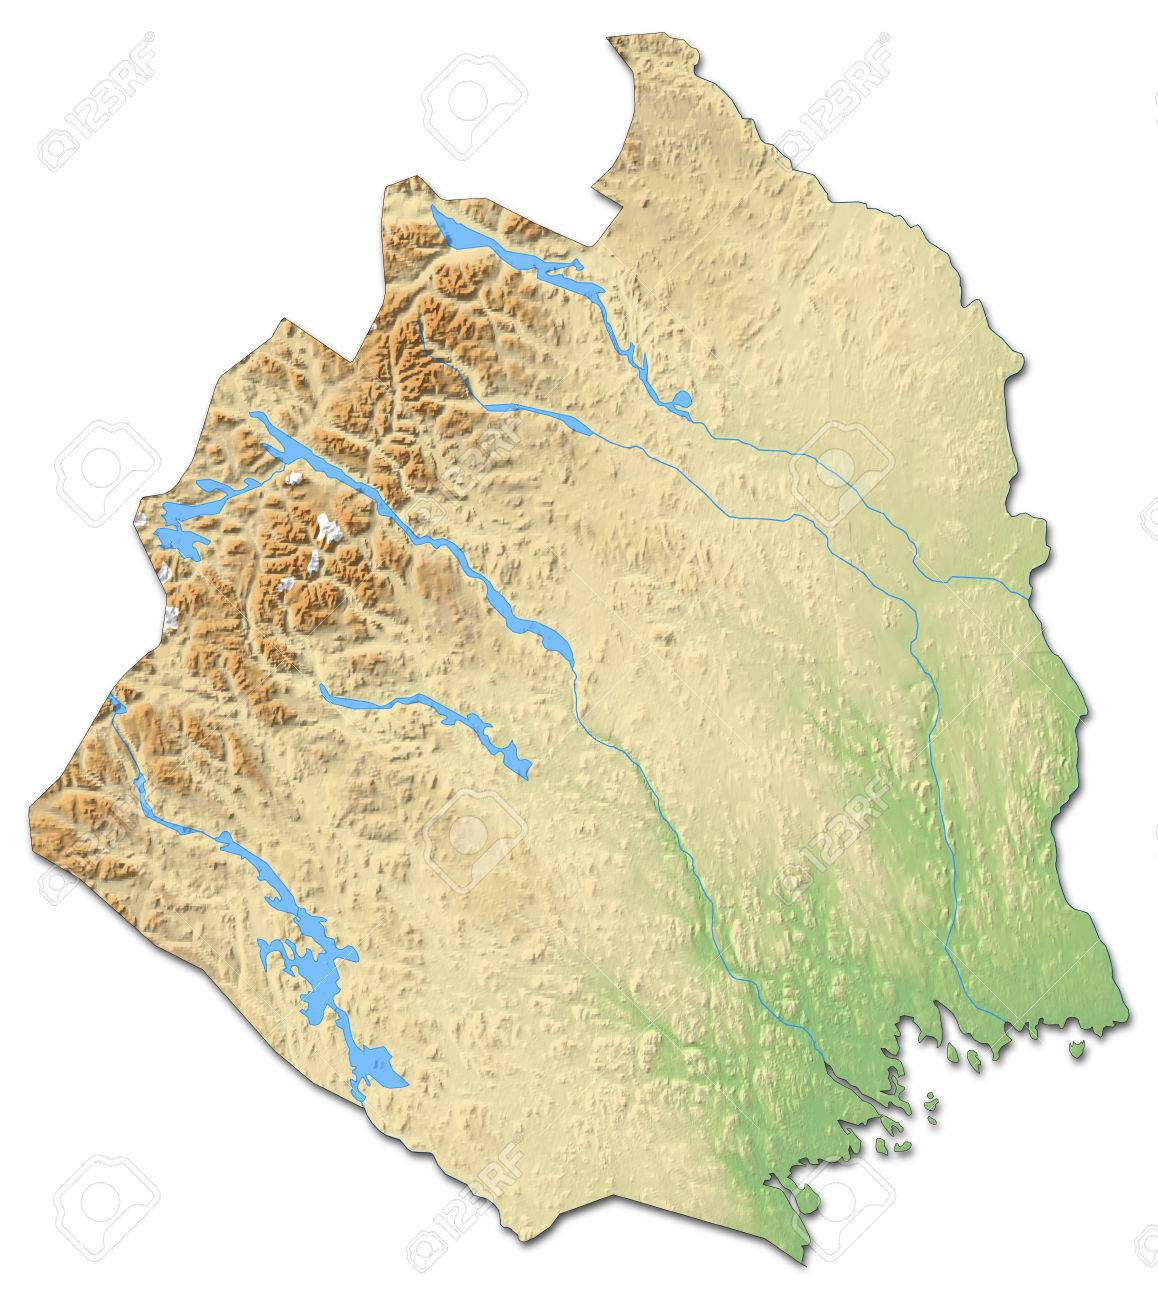 Relief Map Of Norrbotten County A Province Of Sweden With Shaded - Sweden relief map